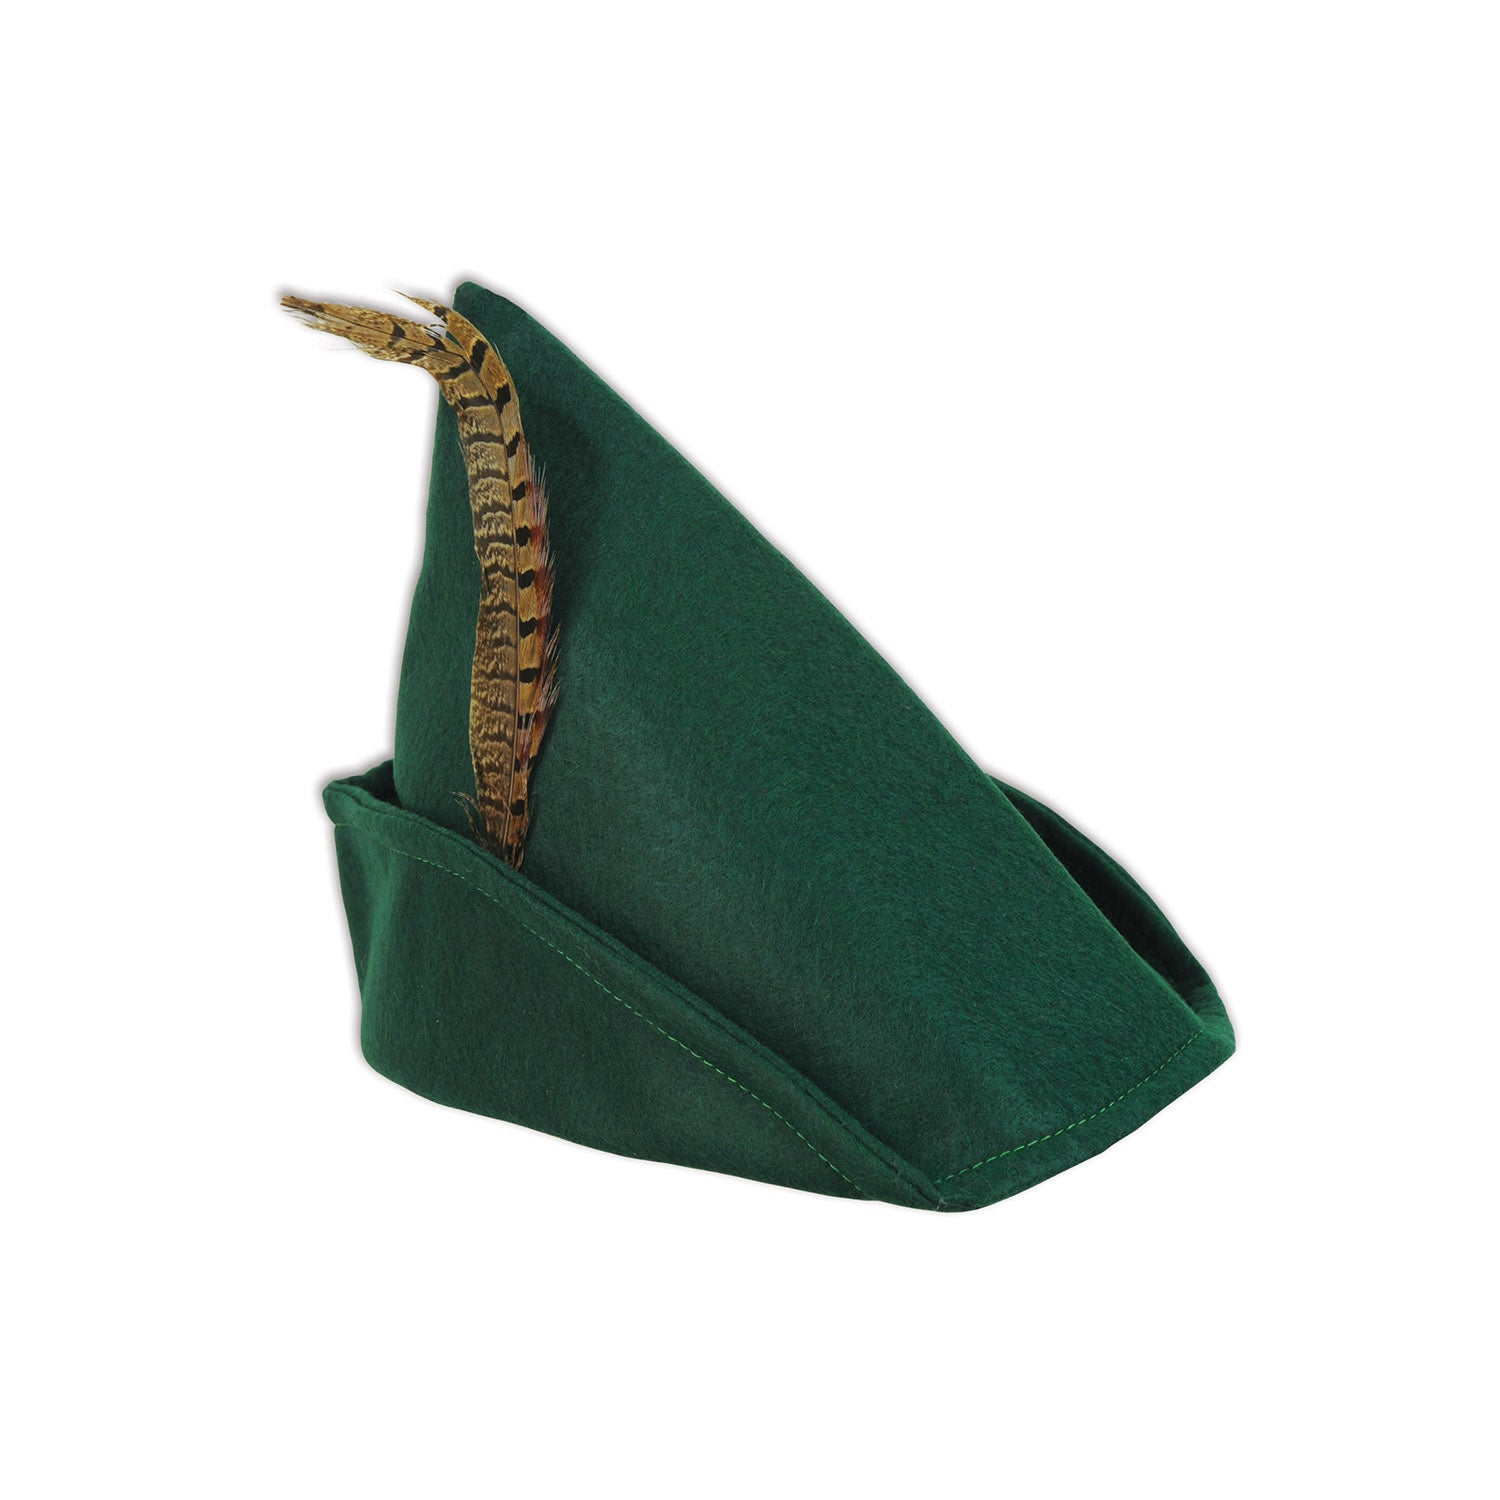 Felt Robin Hood Hat by Beistle - Medieval Theme Decorations